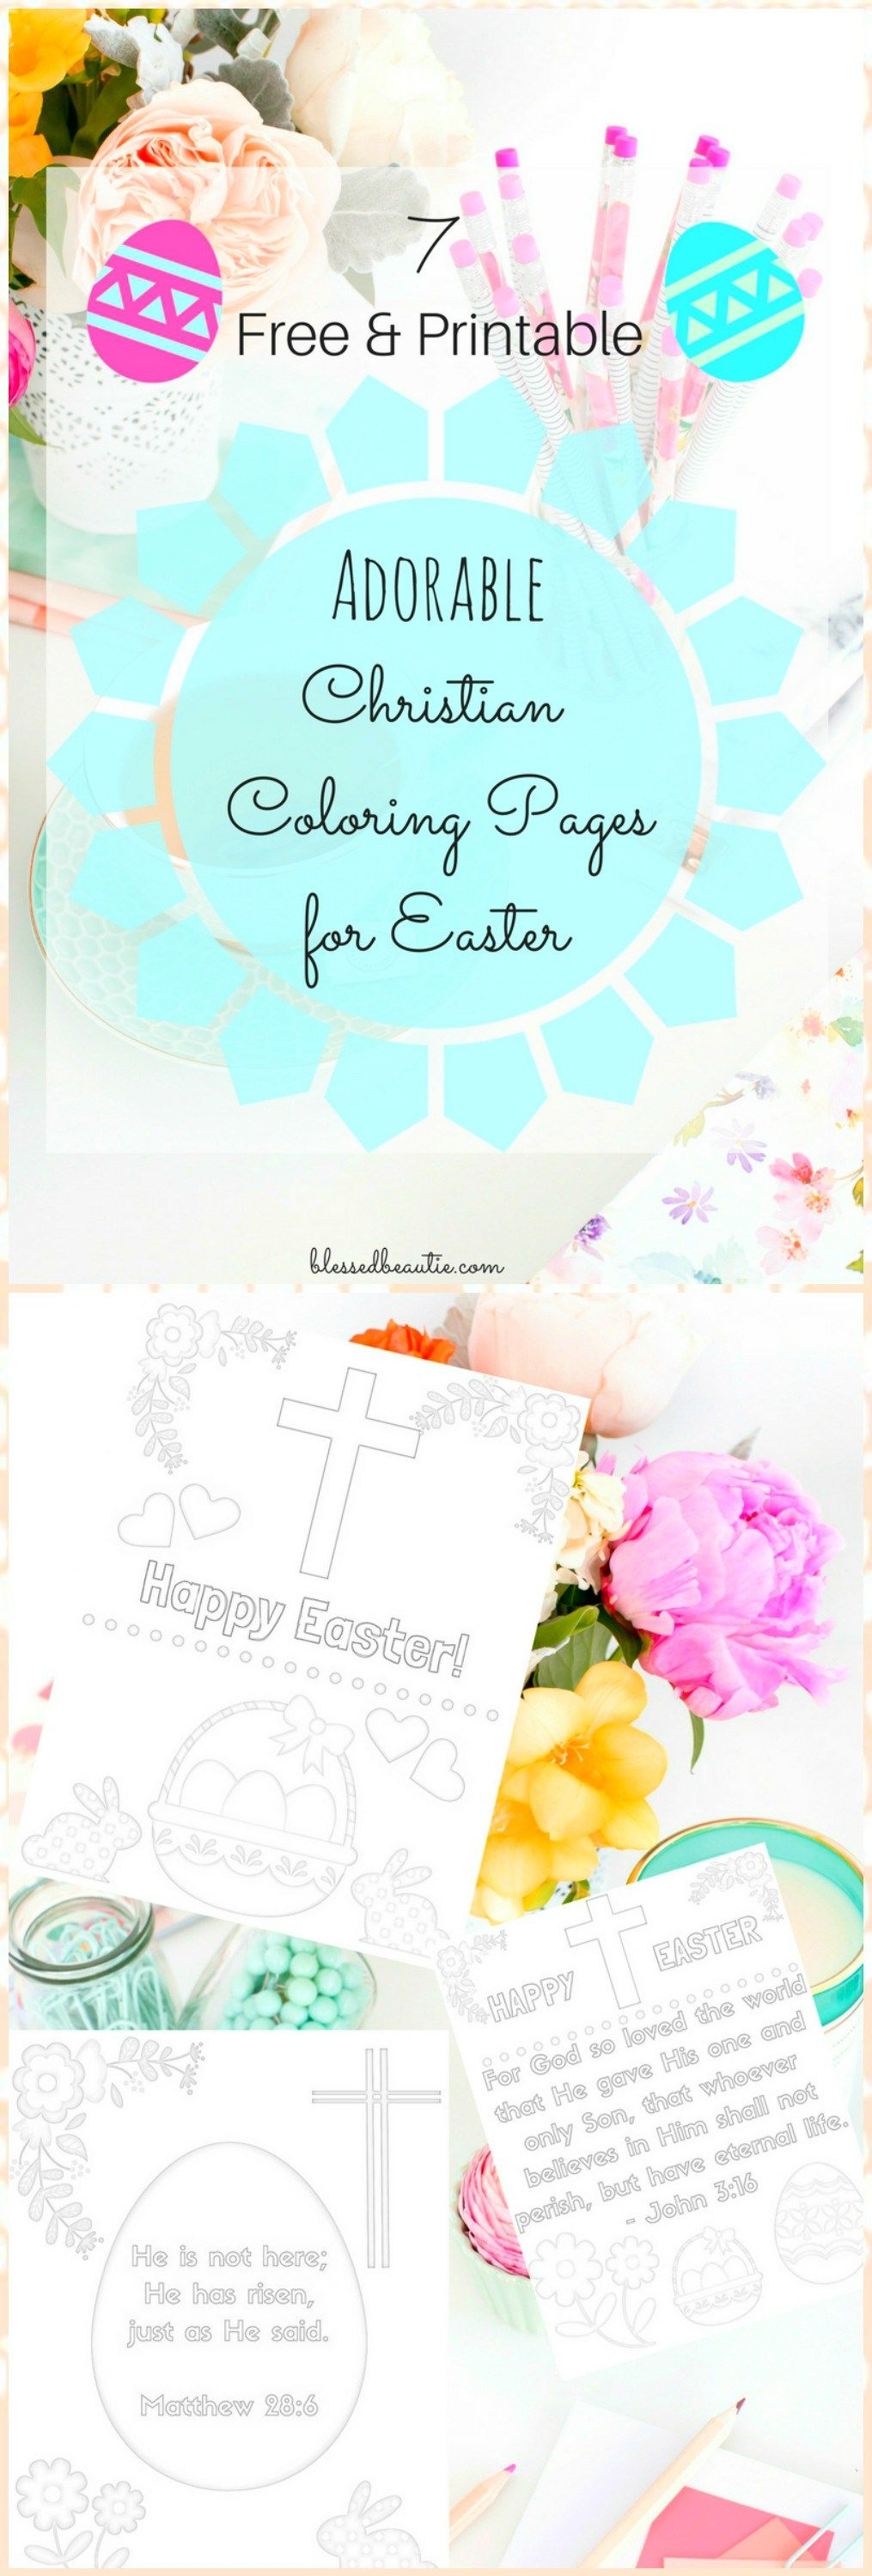 Adorable printable christian easter coloring pages for kids free